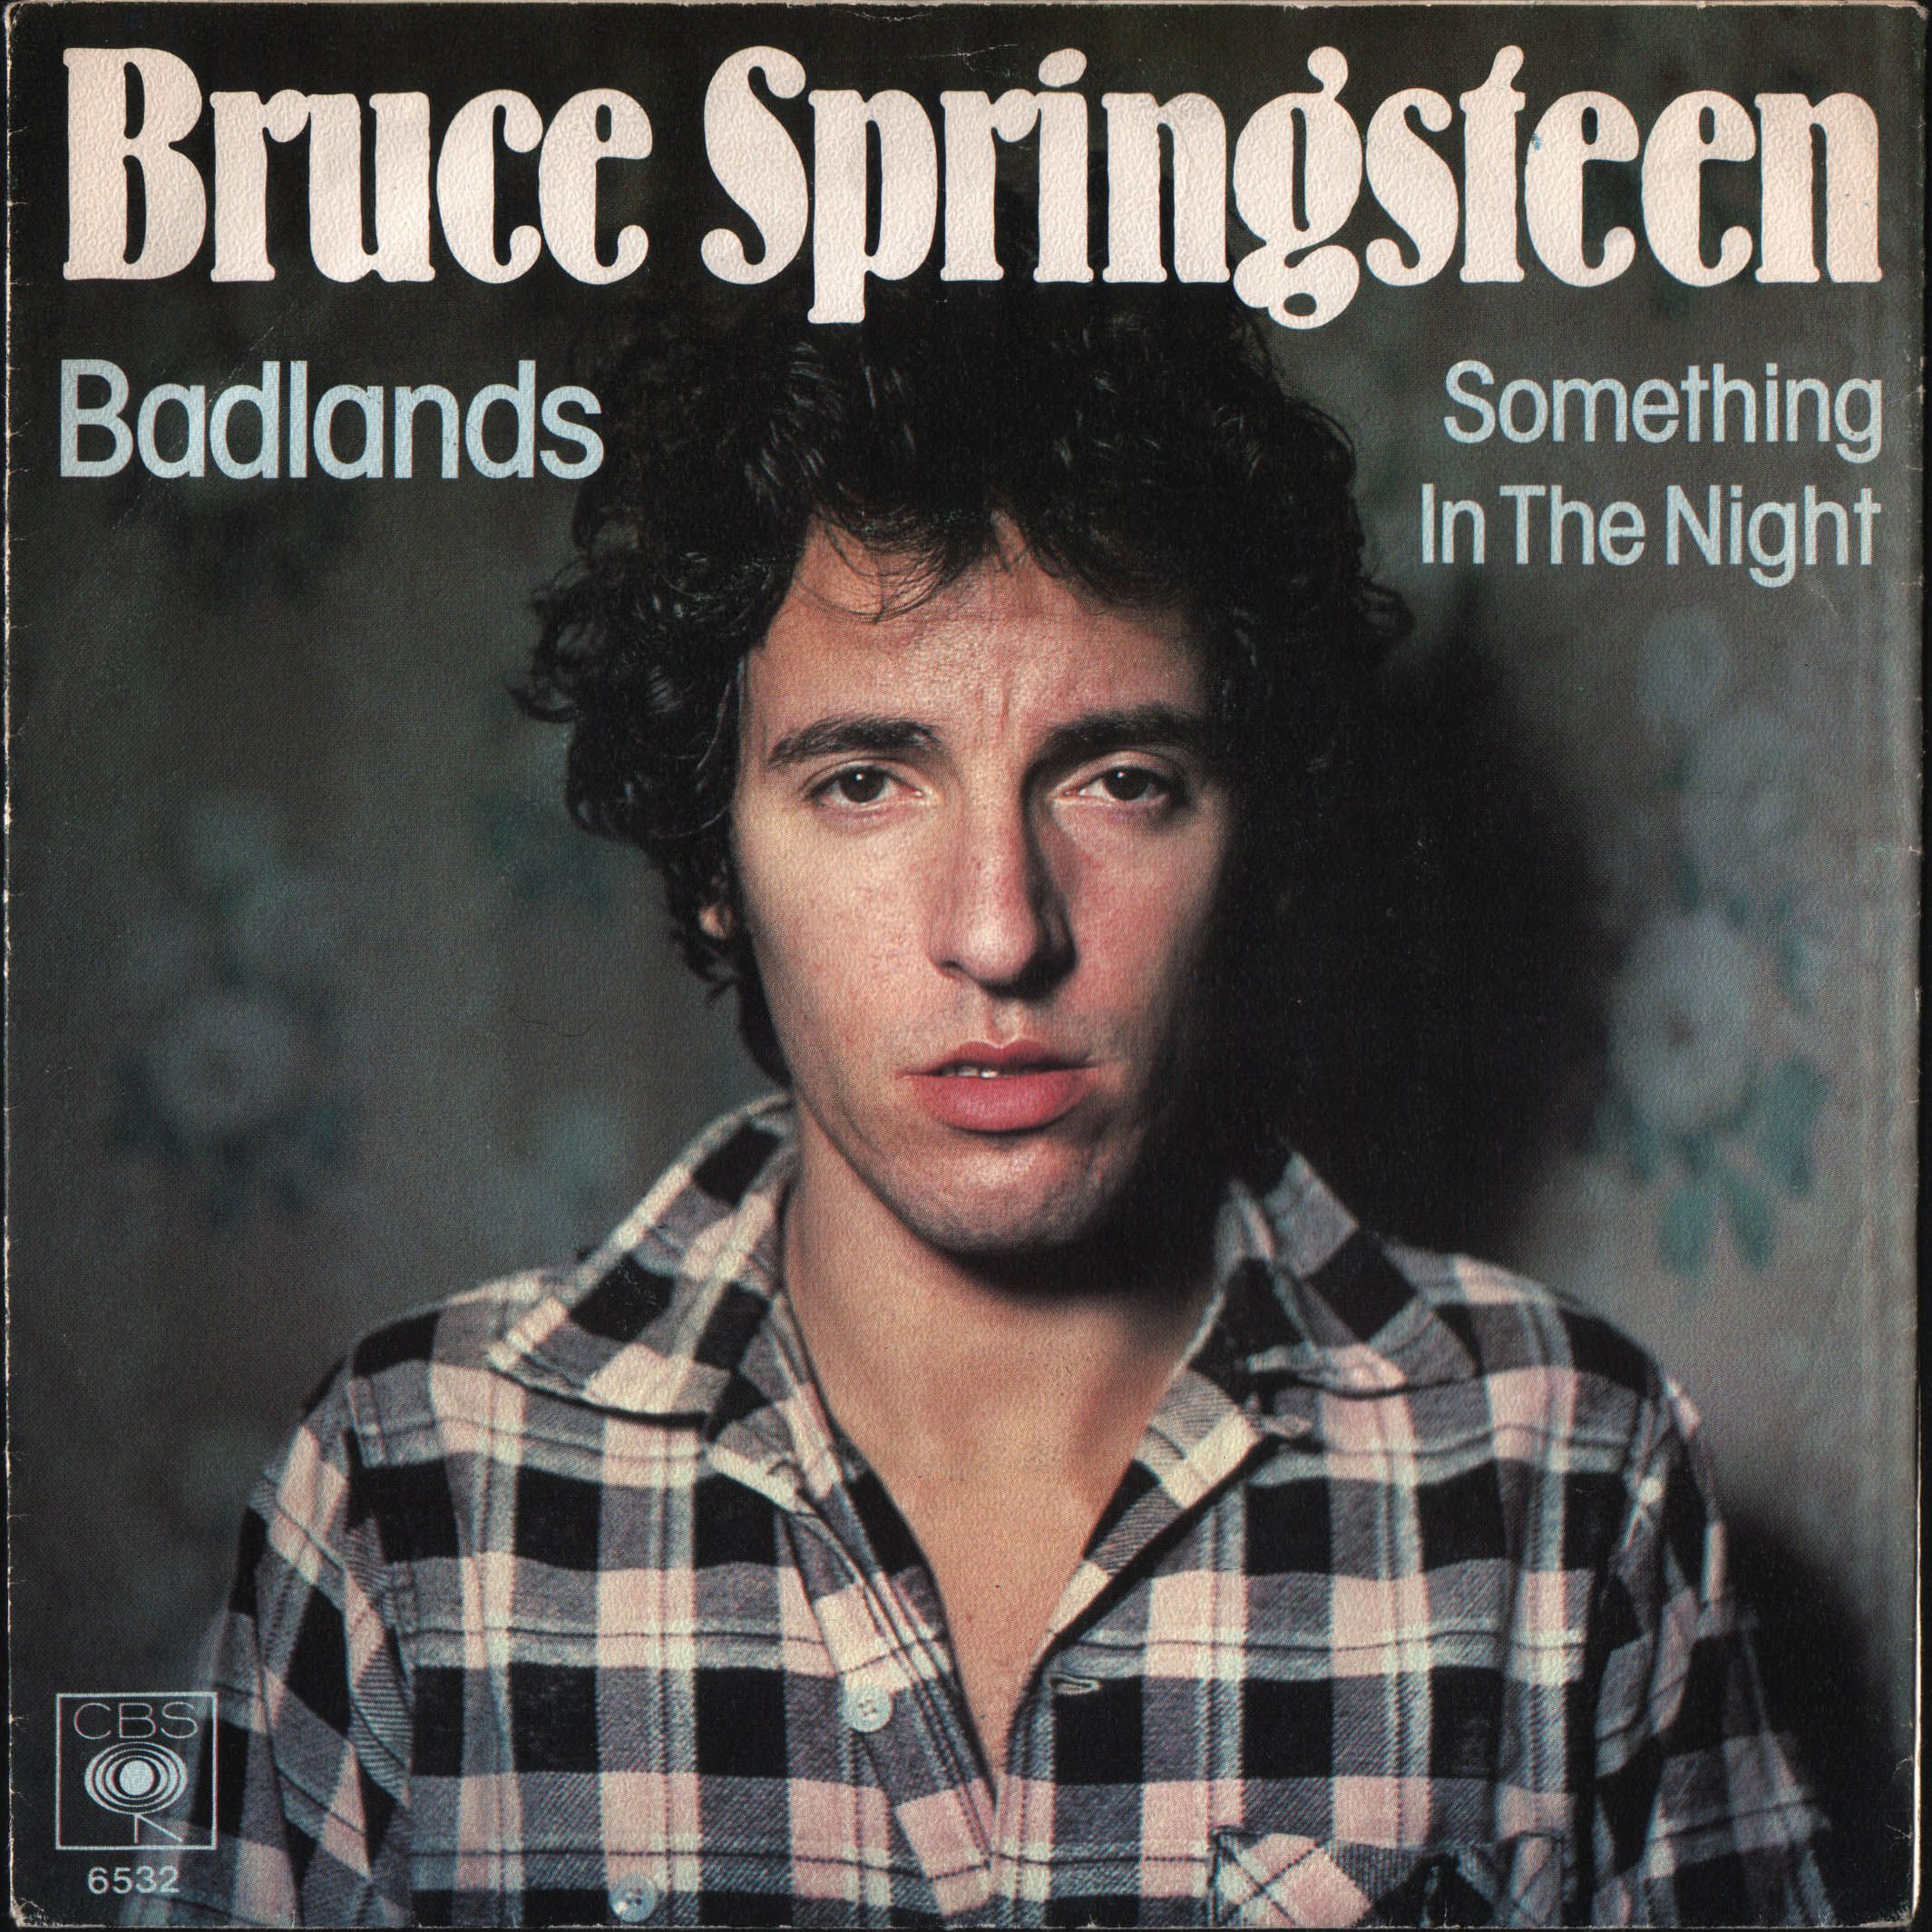 Bruce Springsteen Badlands / Something in the Night